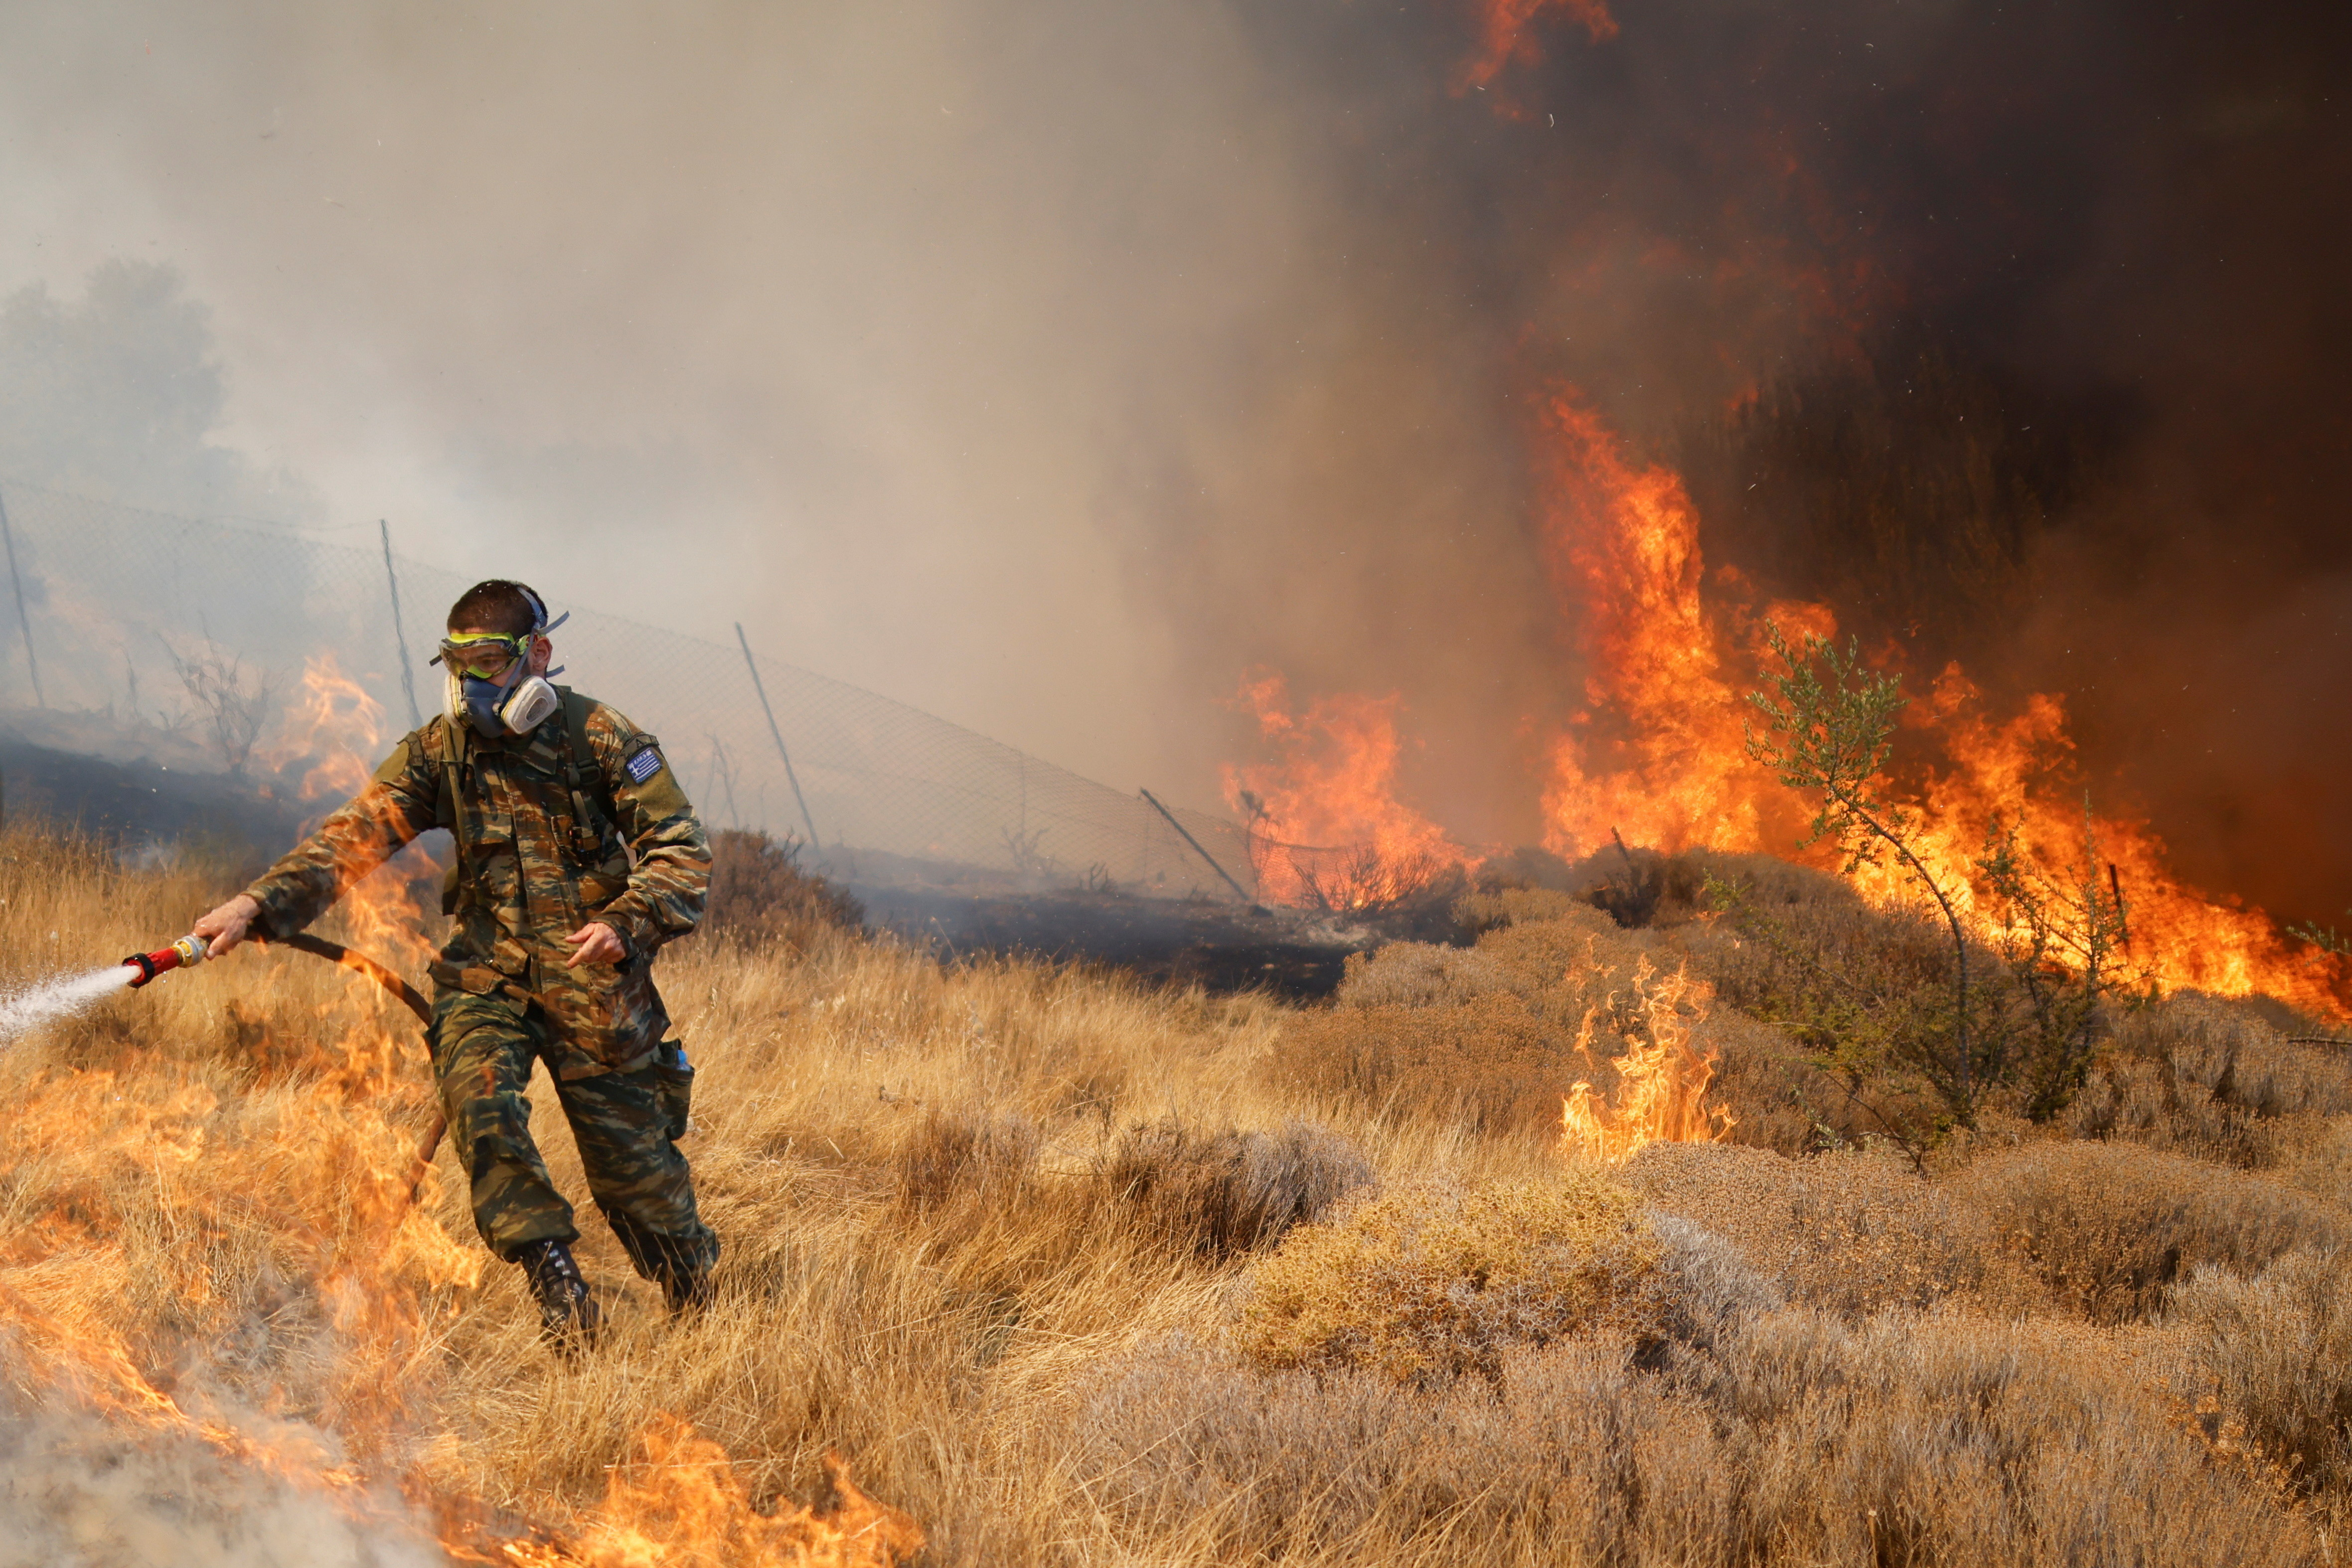 A volunteer tries to extinguish a wildfire burning in the village of Markati, near Athens, Greece, August 16, 2021.